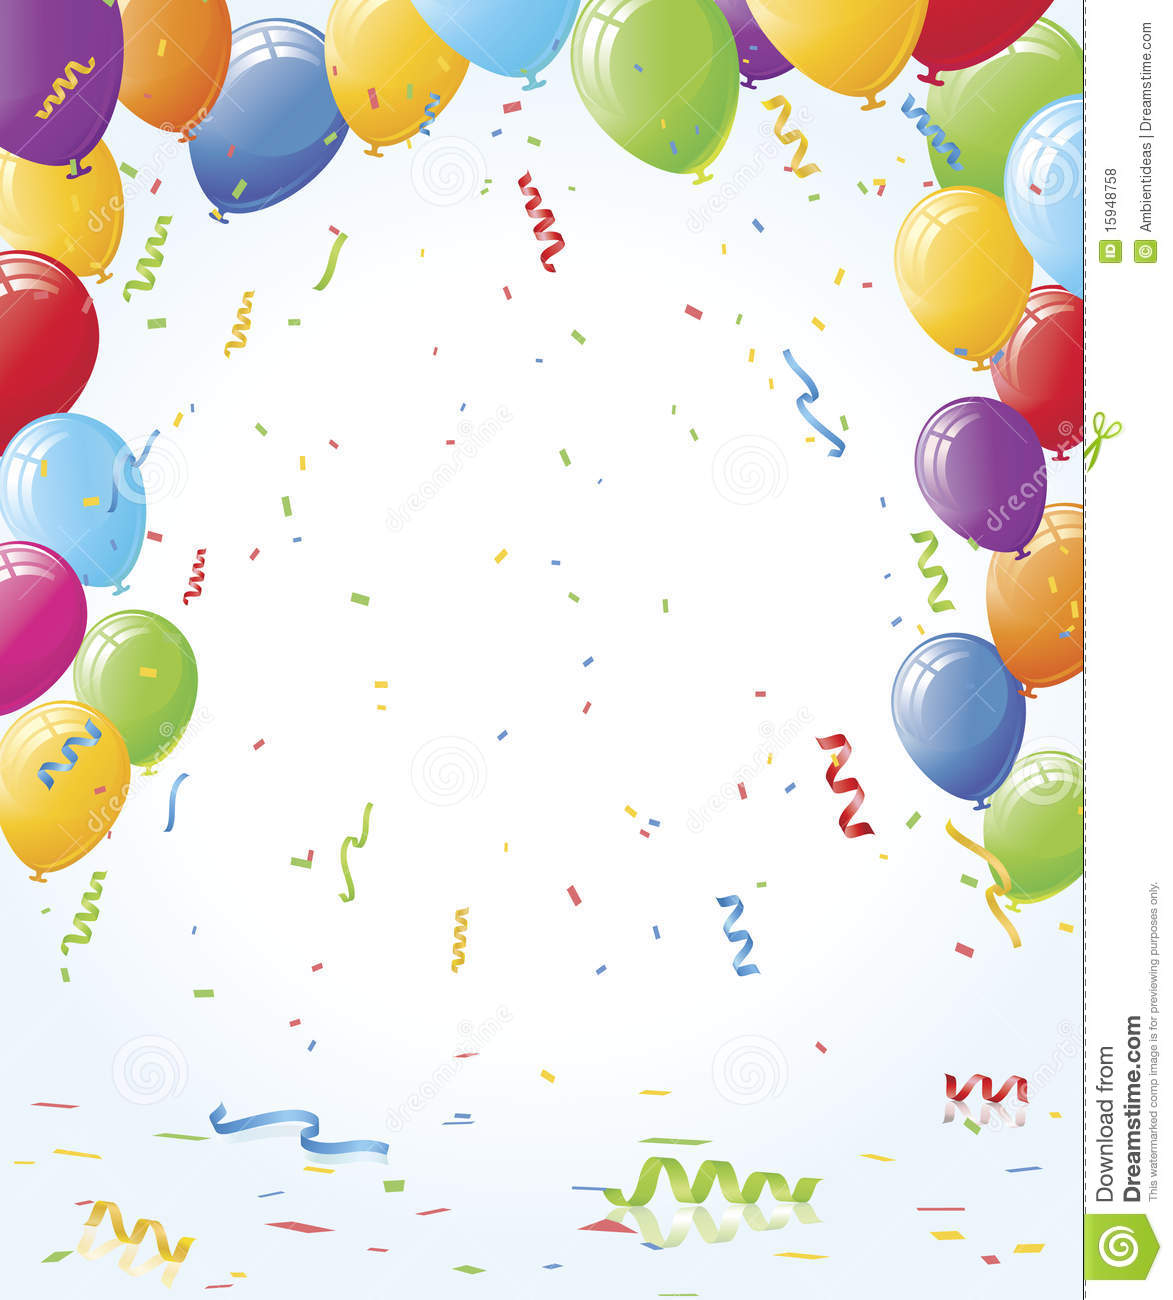 Party Balloons And Confetti Royalty Free Stock Photos ...